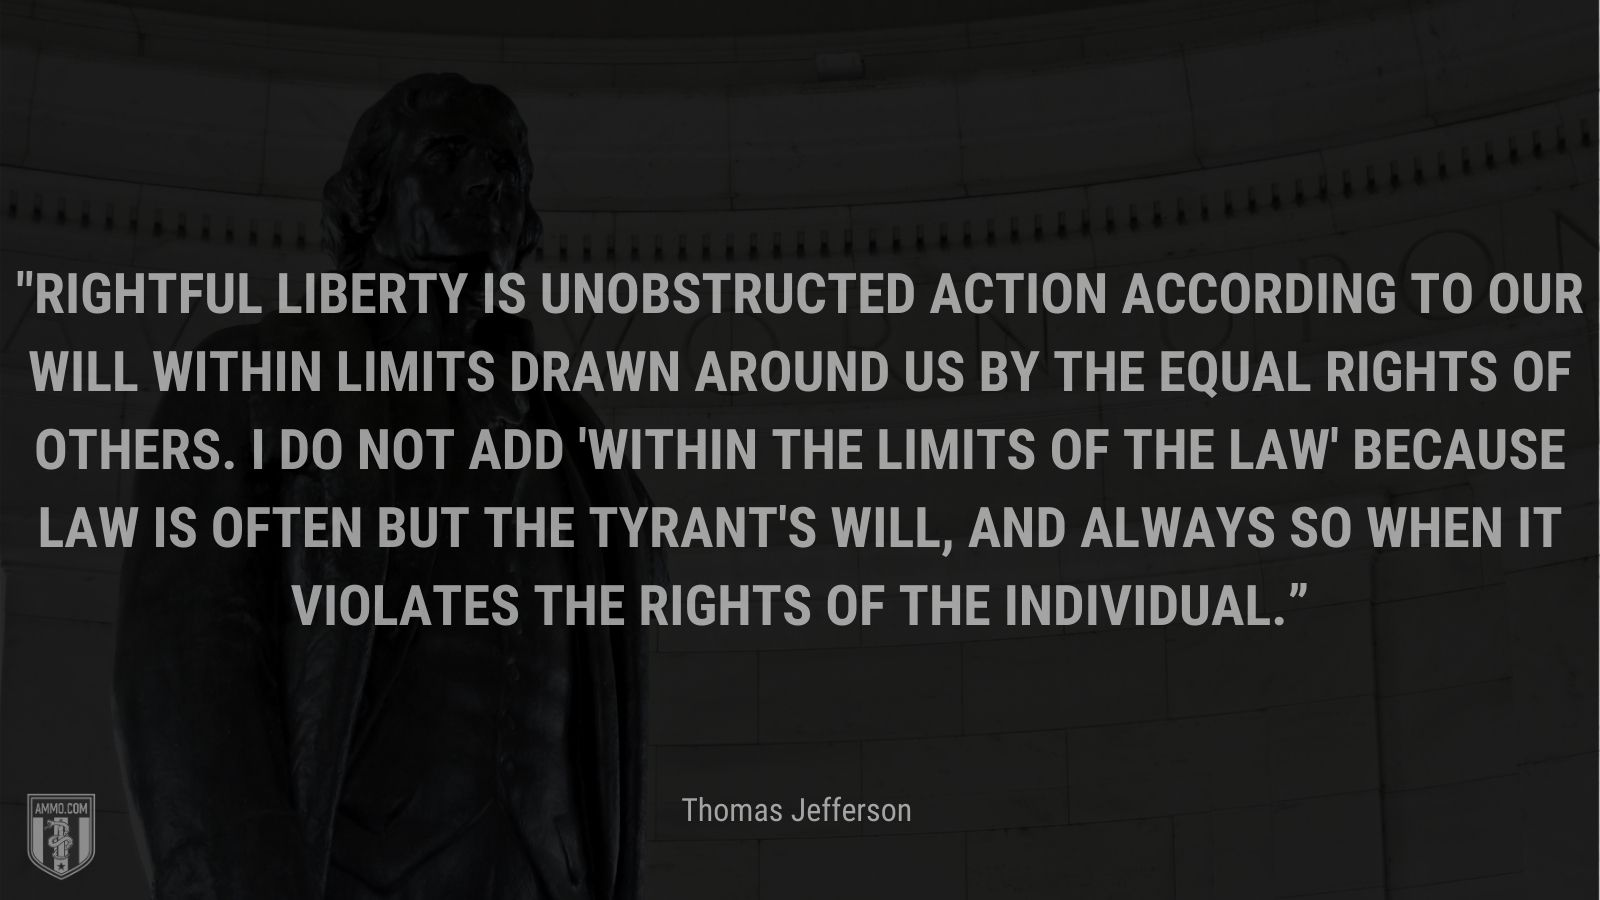 """""""Rightful liberty is unobstructed action according to our will within limits drawn around us by the equal rights of others. I do not add 'within the limits of the law' because law is often but the tyrant's will, and always so when it violates the rights of the individual."""" - Thomas Jefferson"""